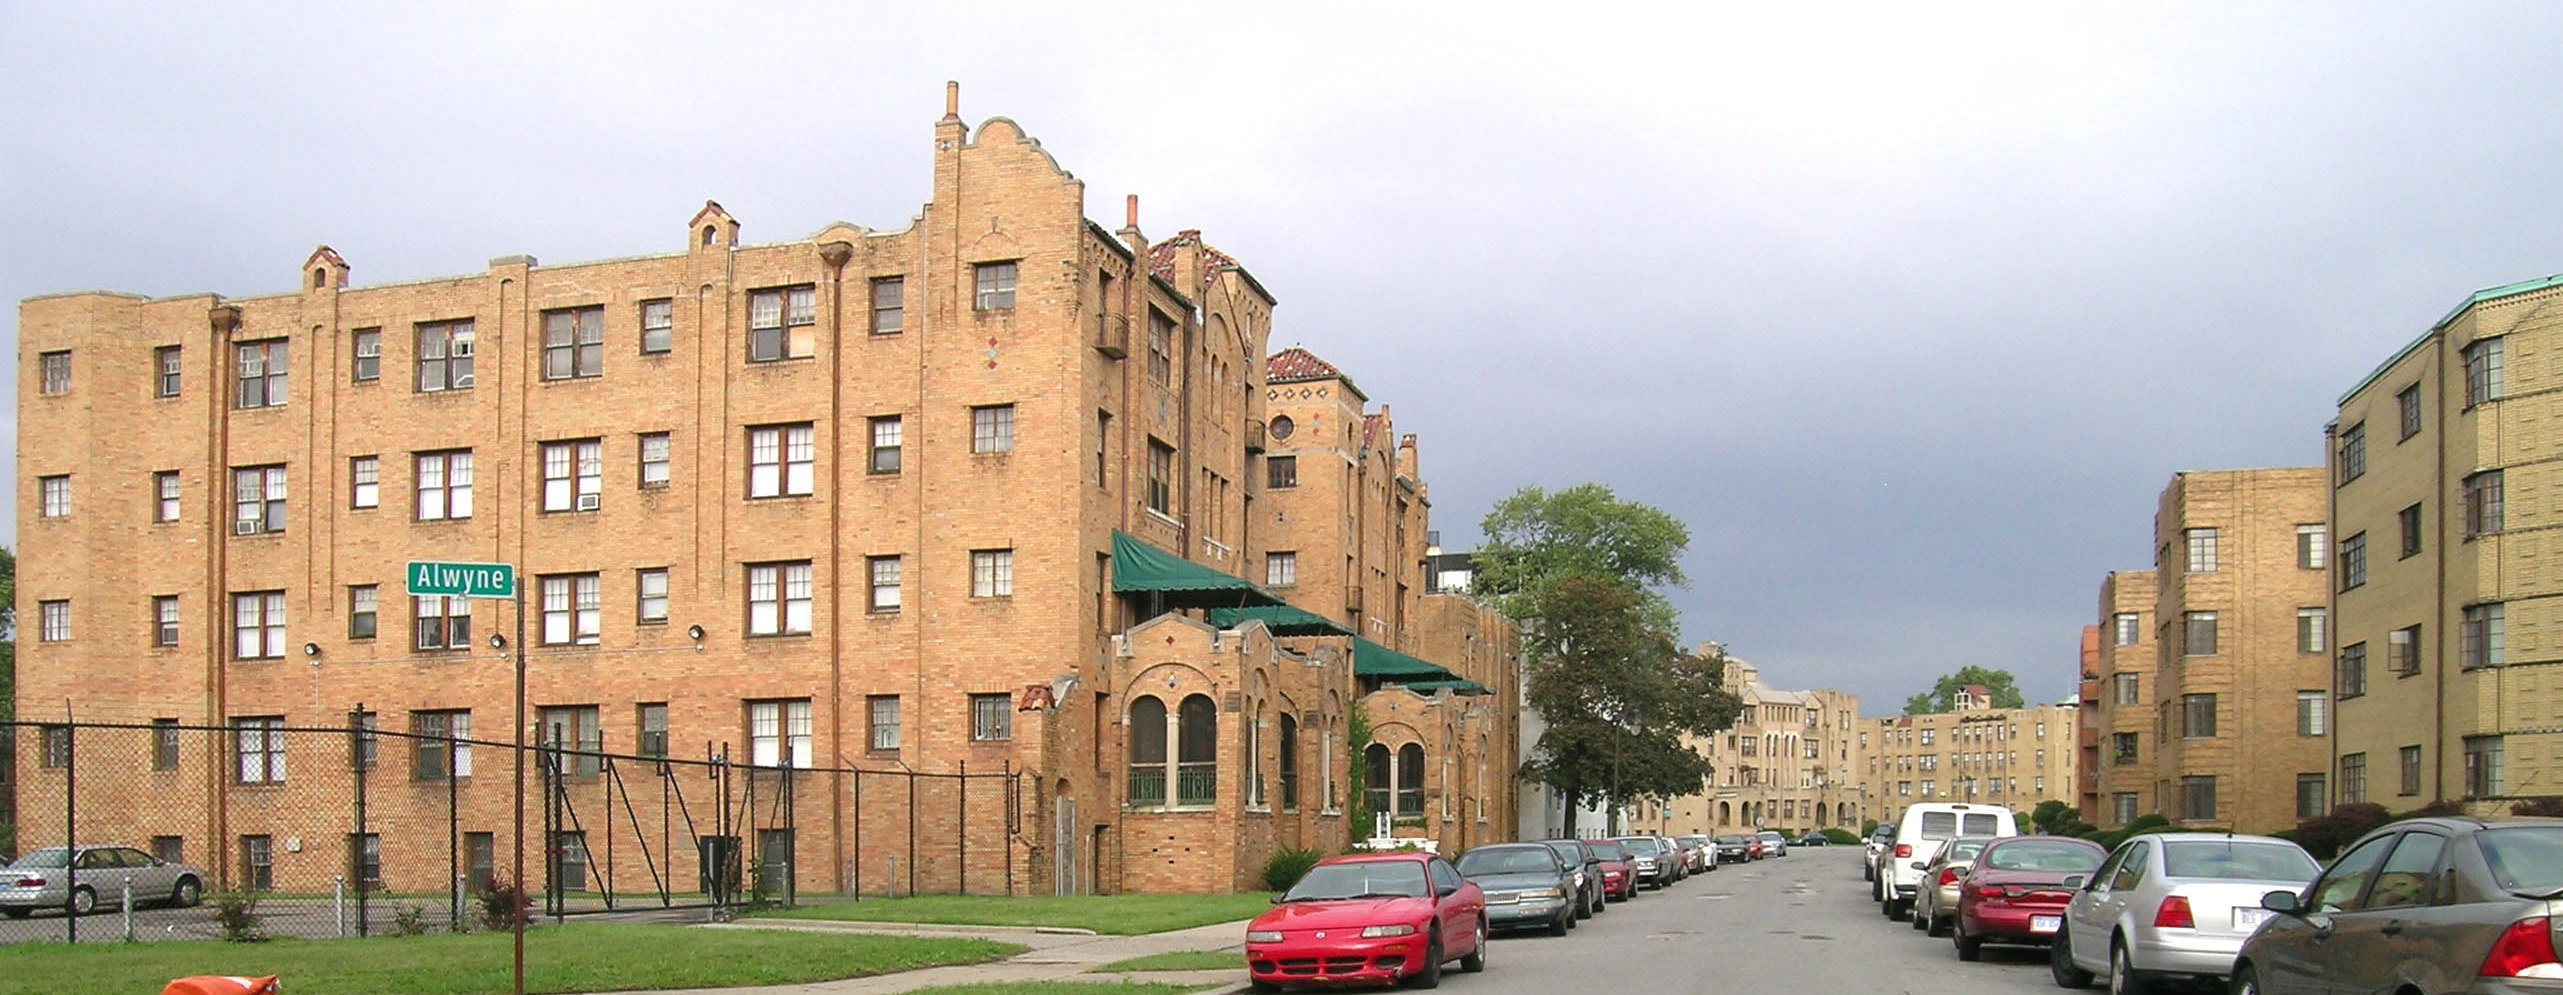 Palmer Park Apartment Building Historic District Wikipedia